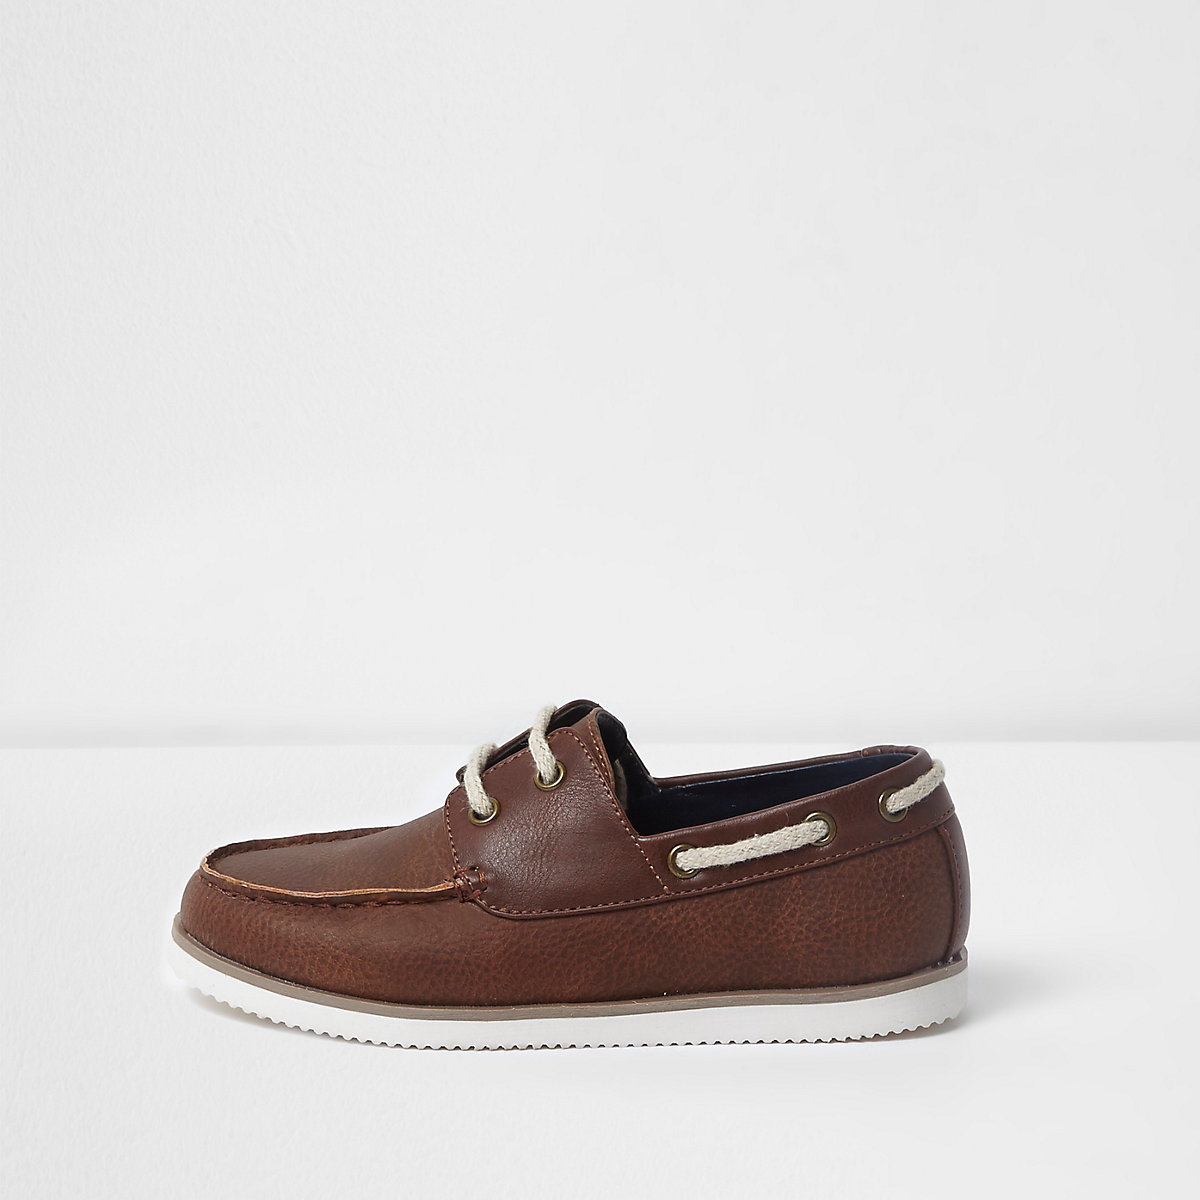 Boys brown lace-up boat shoes